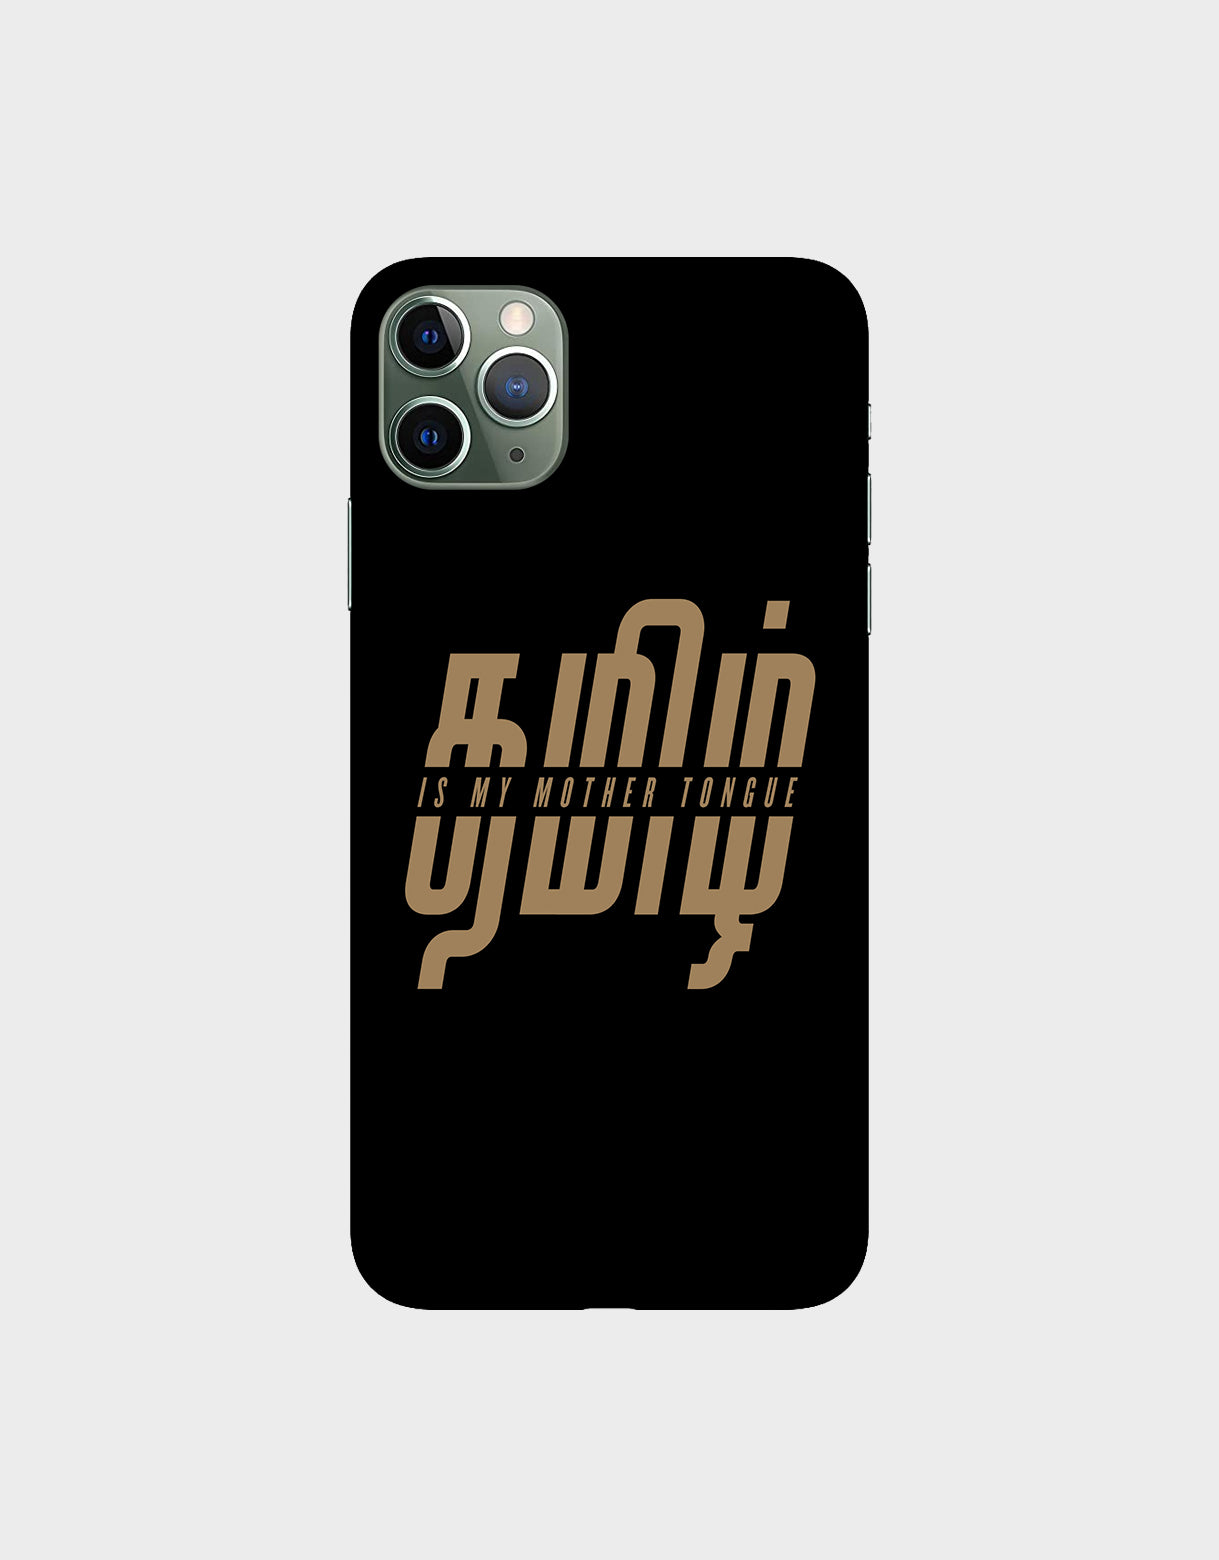 Tamil is my mother tonque -iPhone 11 Pro Max Mobile covers